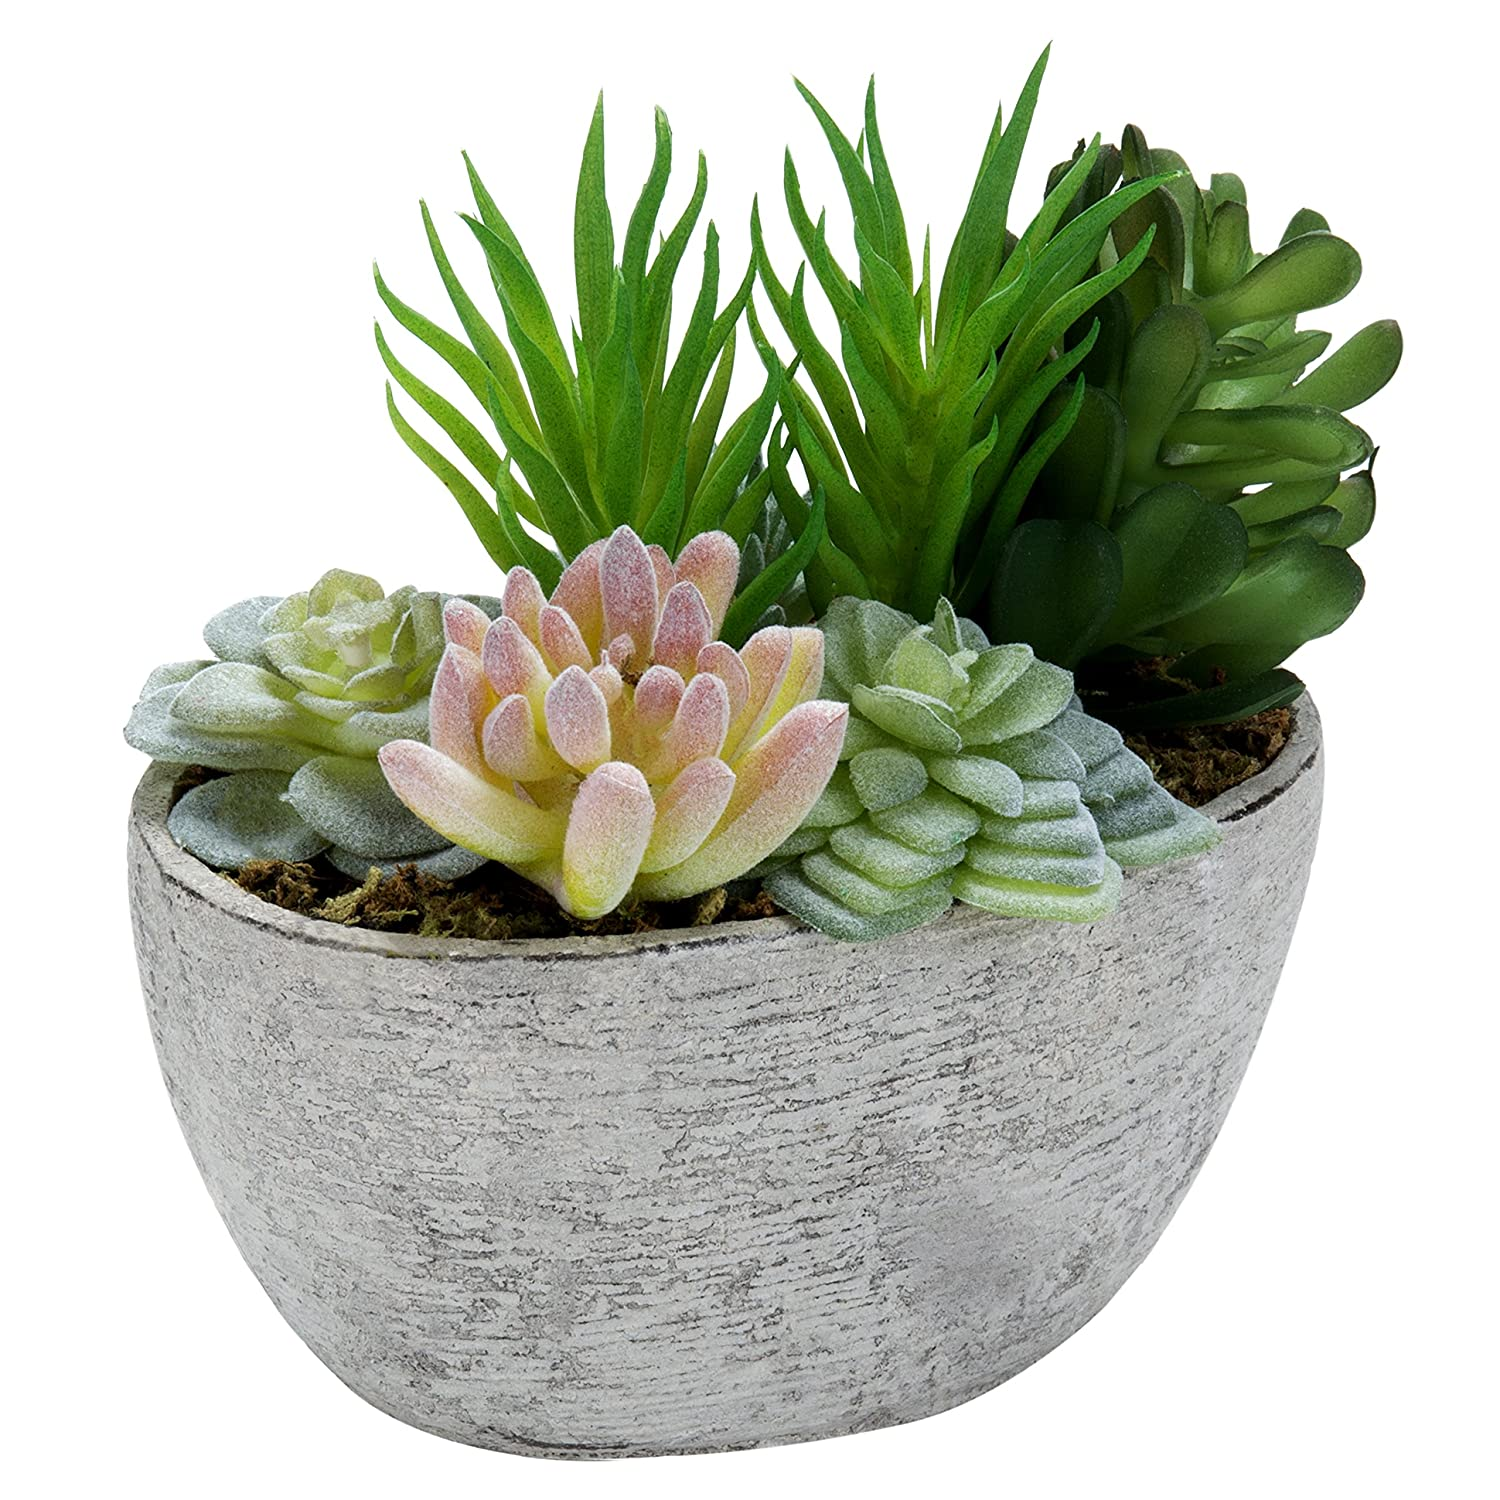 MyGift Tabletop Artificial Succulent Arrangement in Eco-Friendly Pulp Planter Pot